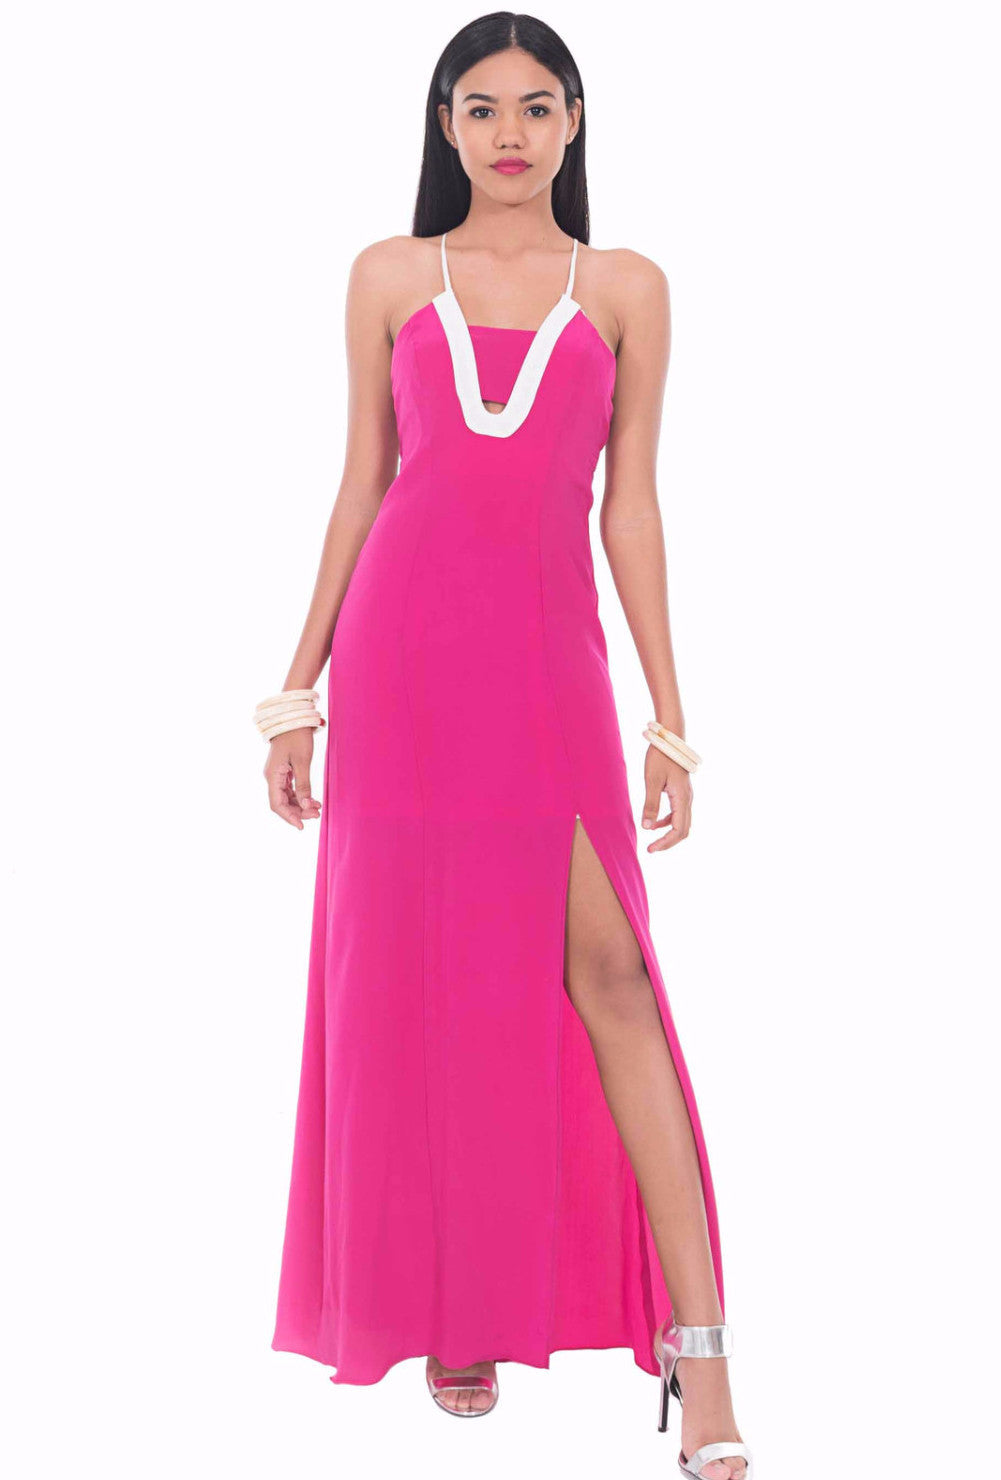 Pink Sail Silk Maxi Dress by Isy B. Design - Front View on Model